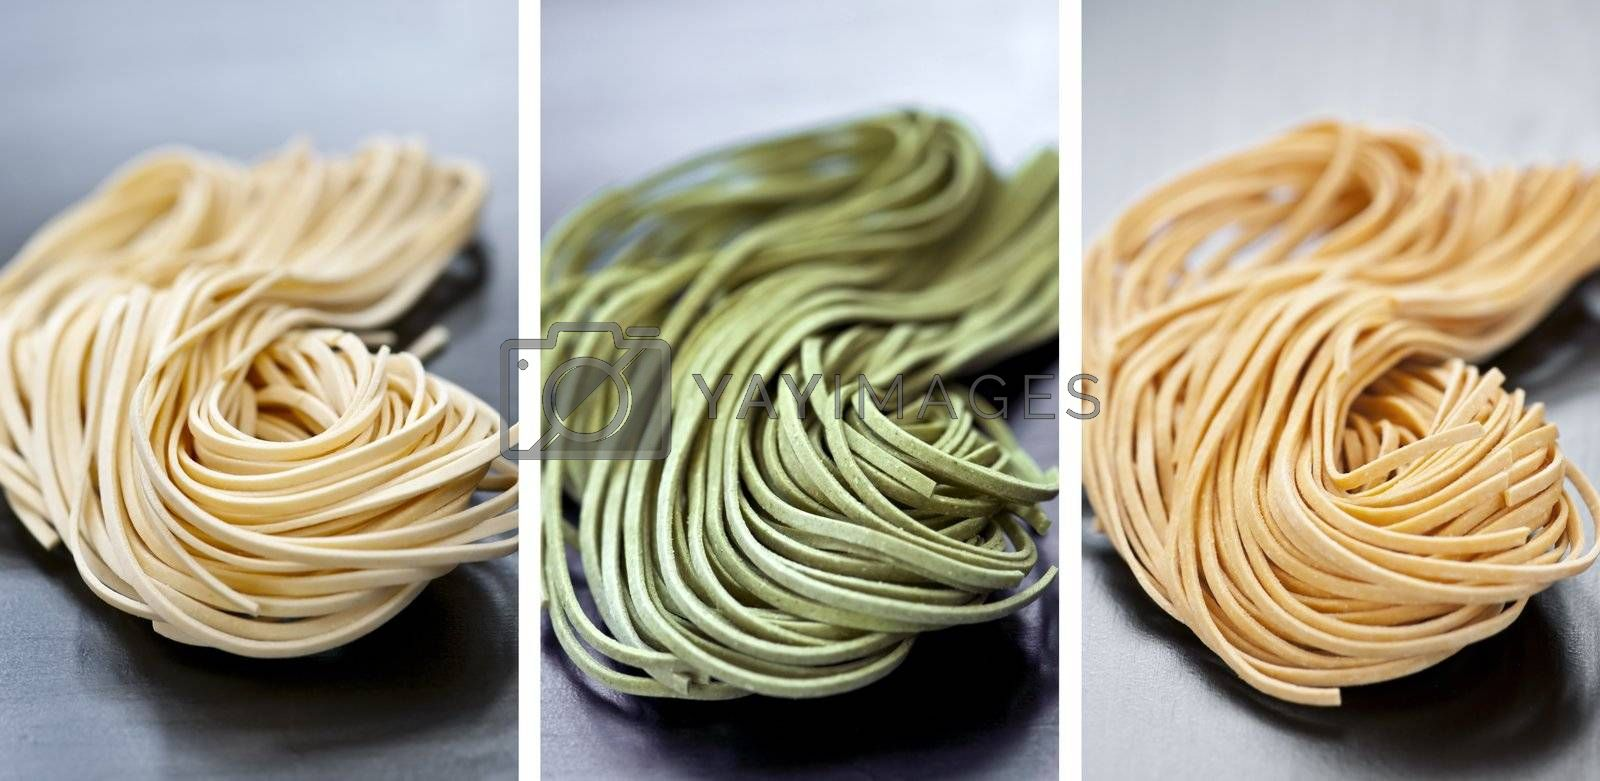 Assorted bundles of colorful raw tagliolini pasta noodles